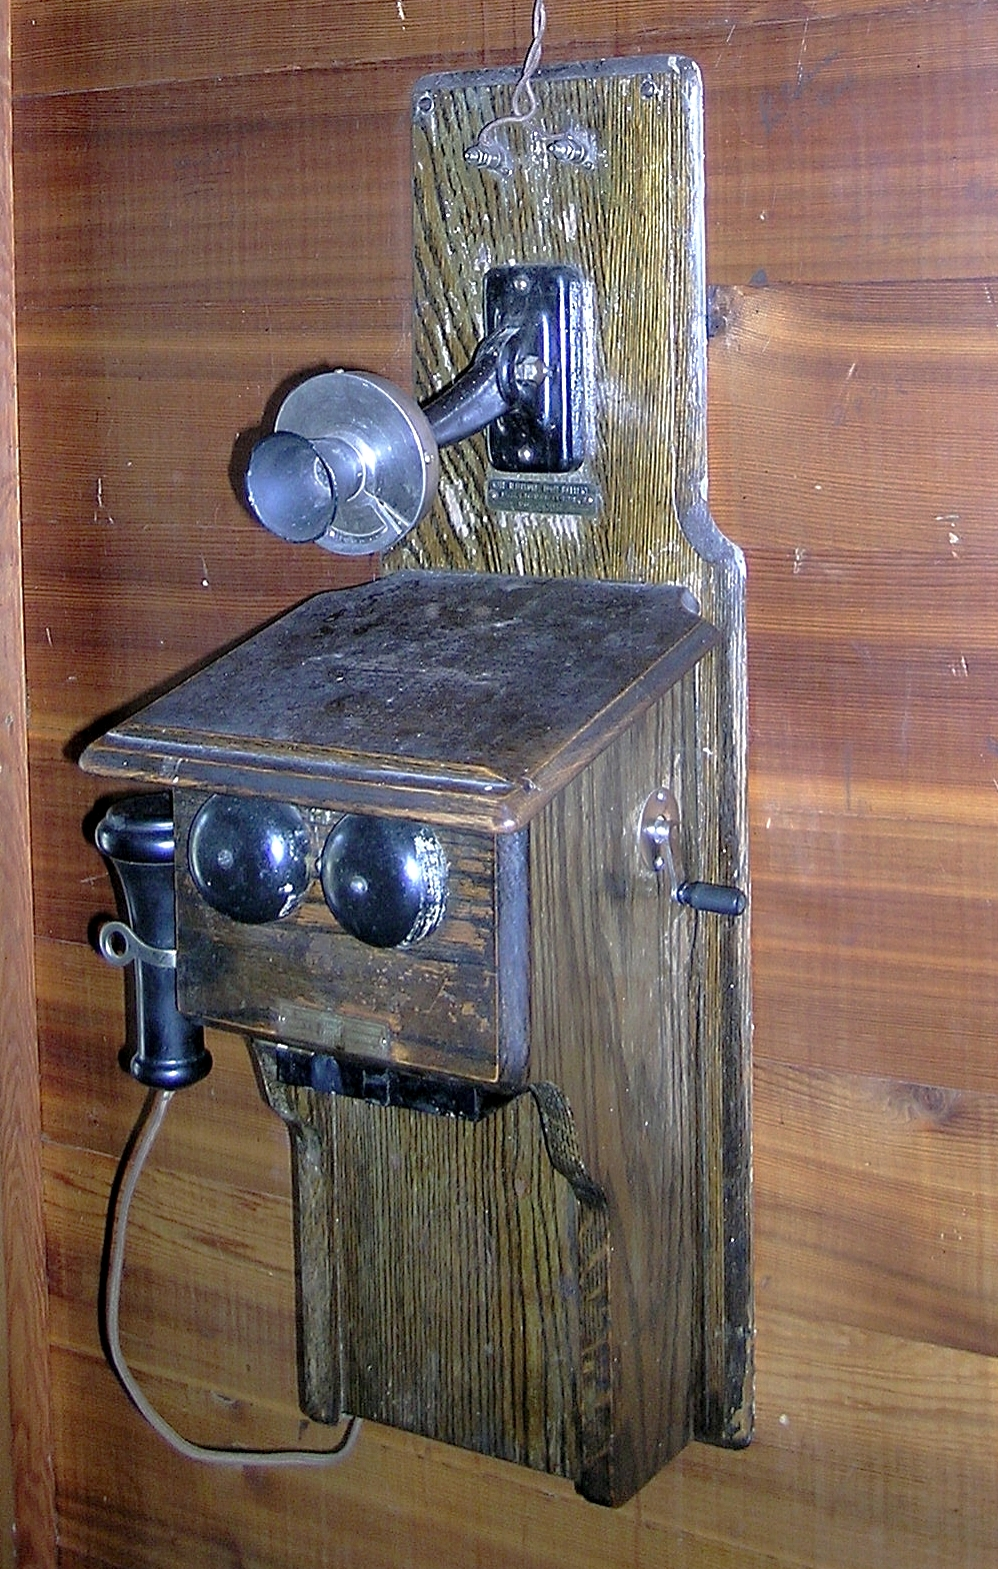 Upper Blacktail Deer Creek Patrol Cabin Crank Telephone on S.jpg